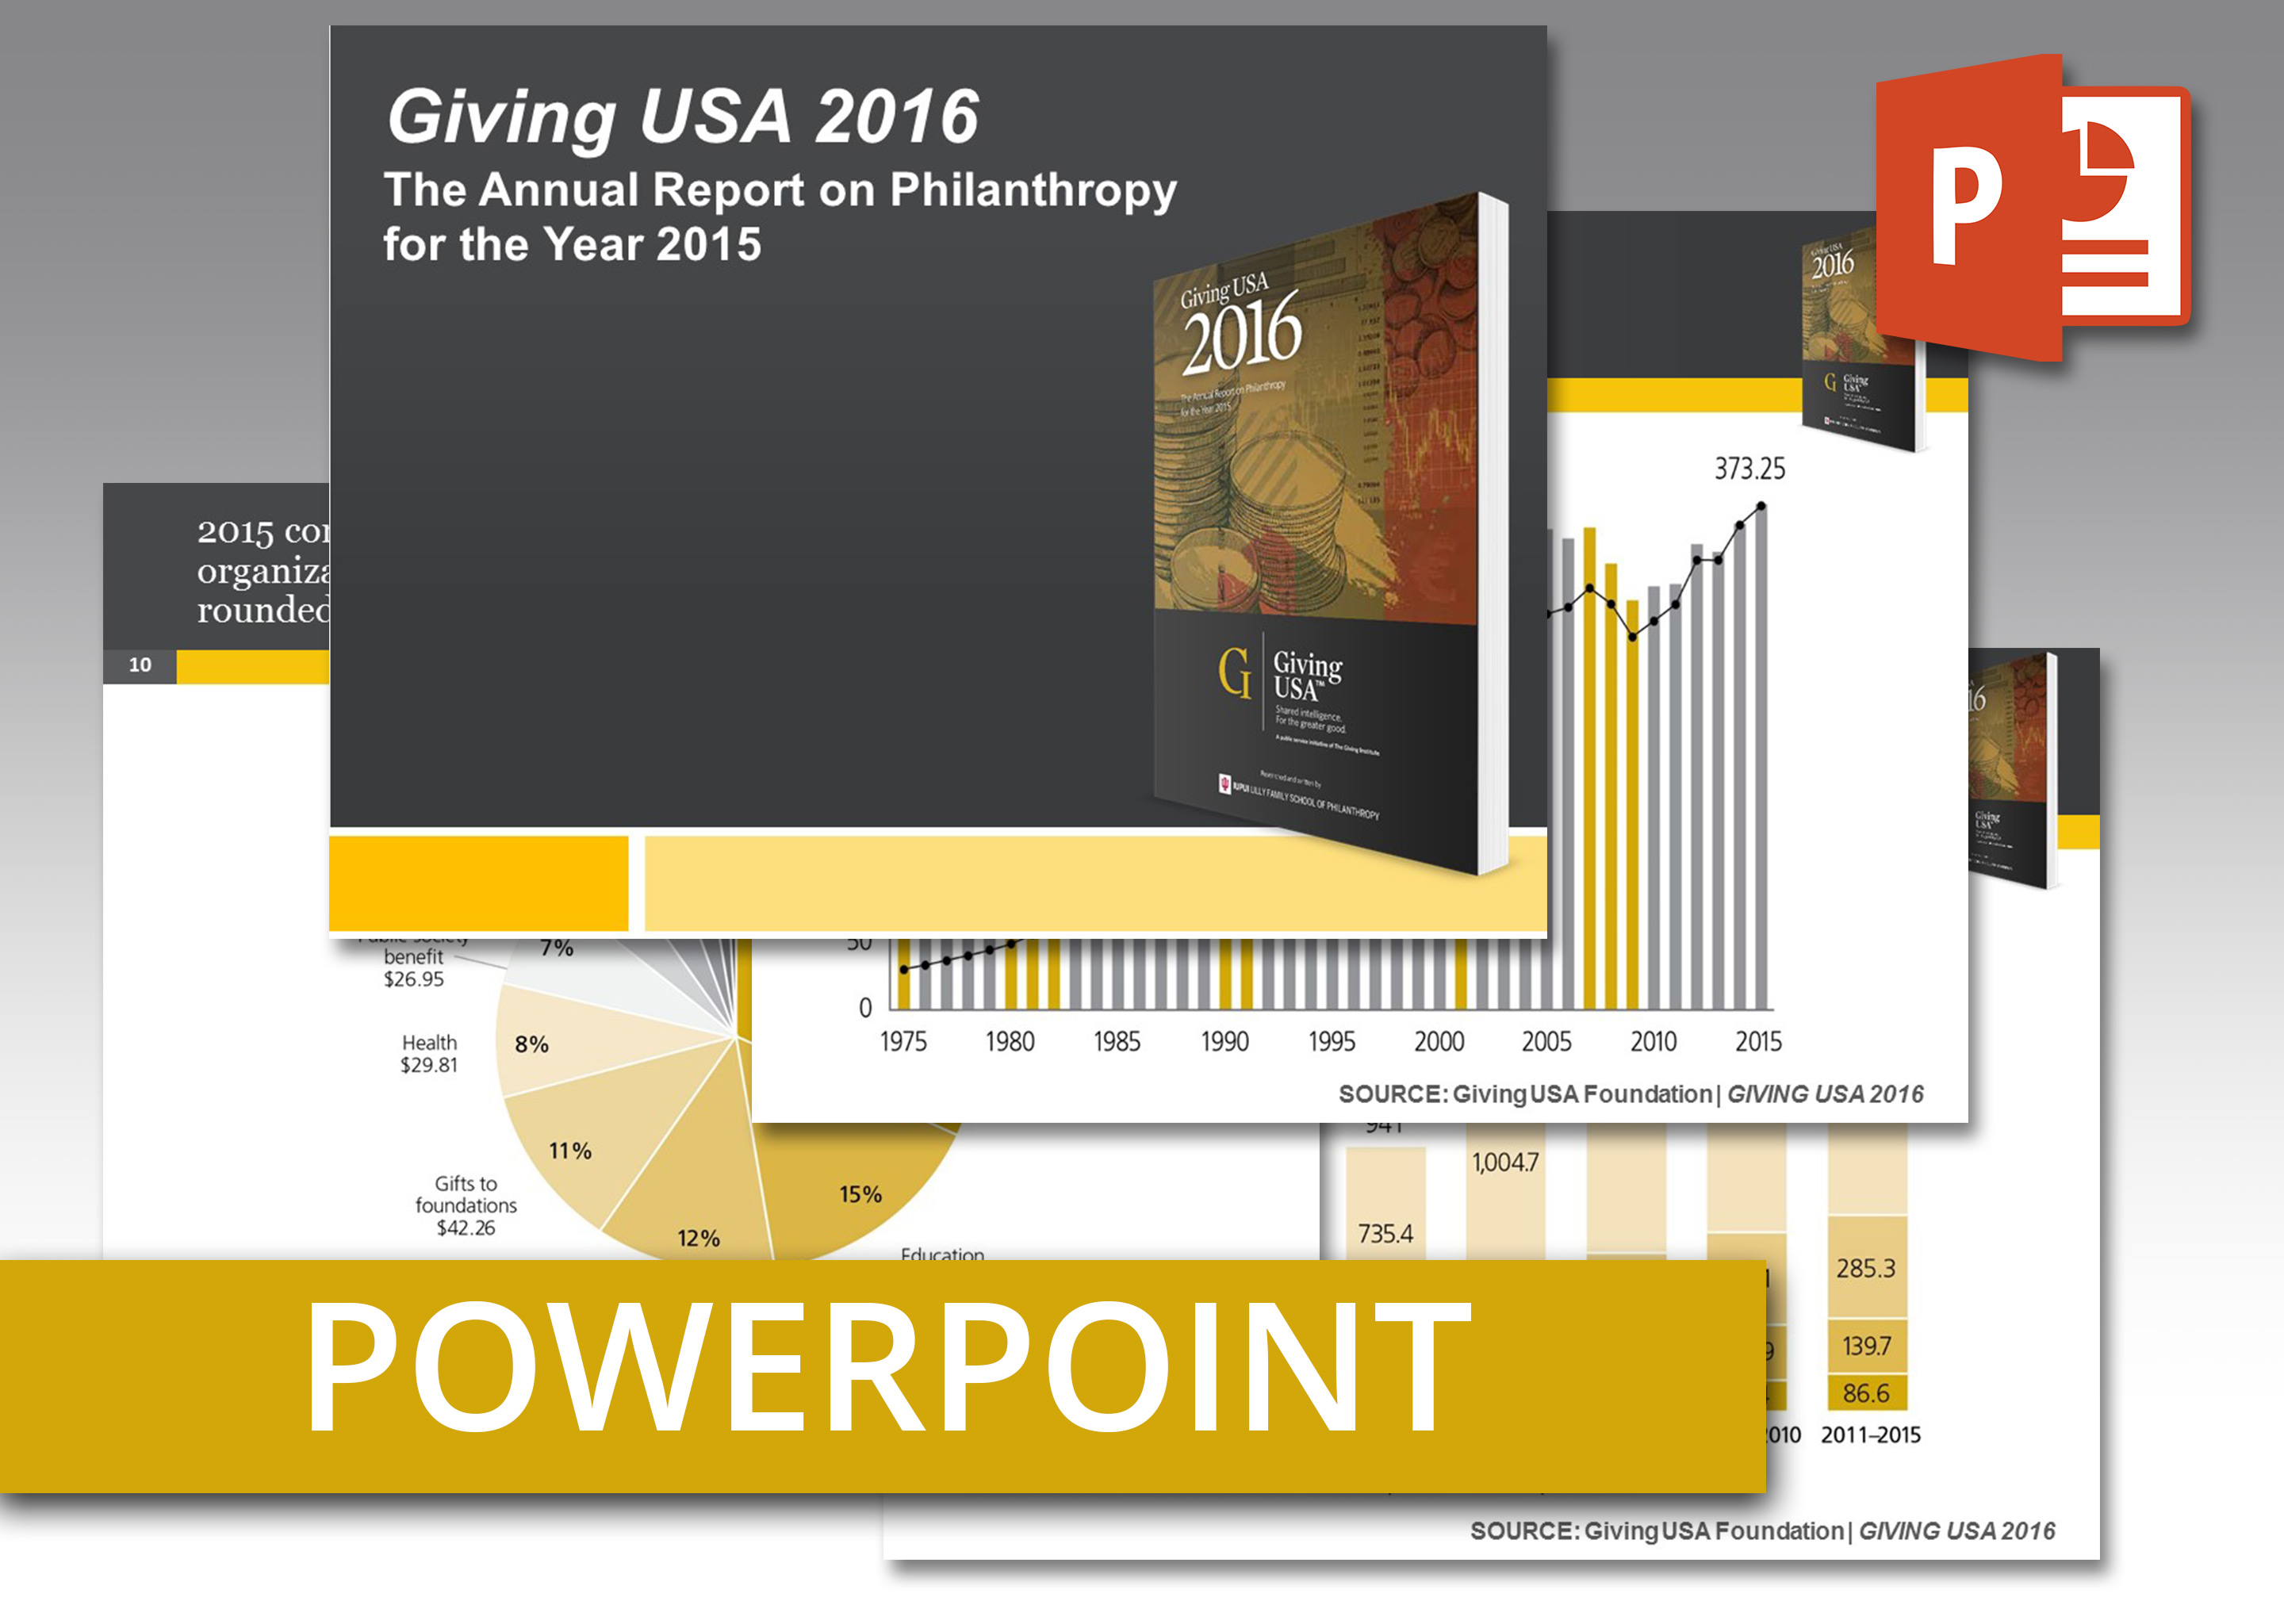 Coolmathgamesus  Fascinating Giving Usa  Powerpoint An Easytouse Presentation Of Report  With Magnificent Giving Usa  Powerpoint An Easytouse Presentation Of Report Findings Including Talking Points With Agreeable Microsoft Powerpoint Designs Also Research Powerpoint Presentation In Addition Ecosystem Powerpoint And Powerpoint Videos As Well As Plagiarism Powerpoint Additionally Themes For Powerpoint  From Givingusaorg With Coolmathgamesus  Magnificent Giving Usa  Powerpoint An Easytouse Presentation Of Report  With Agreeable Giving Usa  Powerpoint An Easytouse Presentation Of Report Findings Including Talking Points And Fascinating Microsoft Powerpoint Designs Also Research Powerpoint Presentation In Addition Ecosystem Powerpoint From Givingusaorg